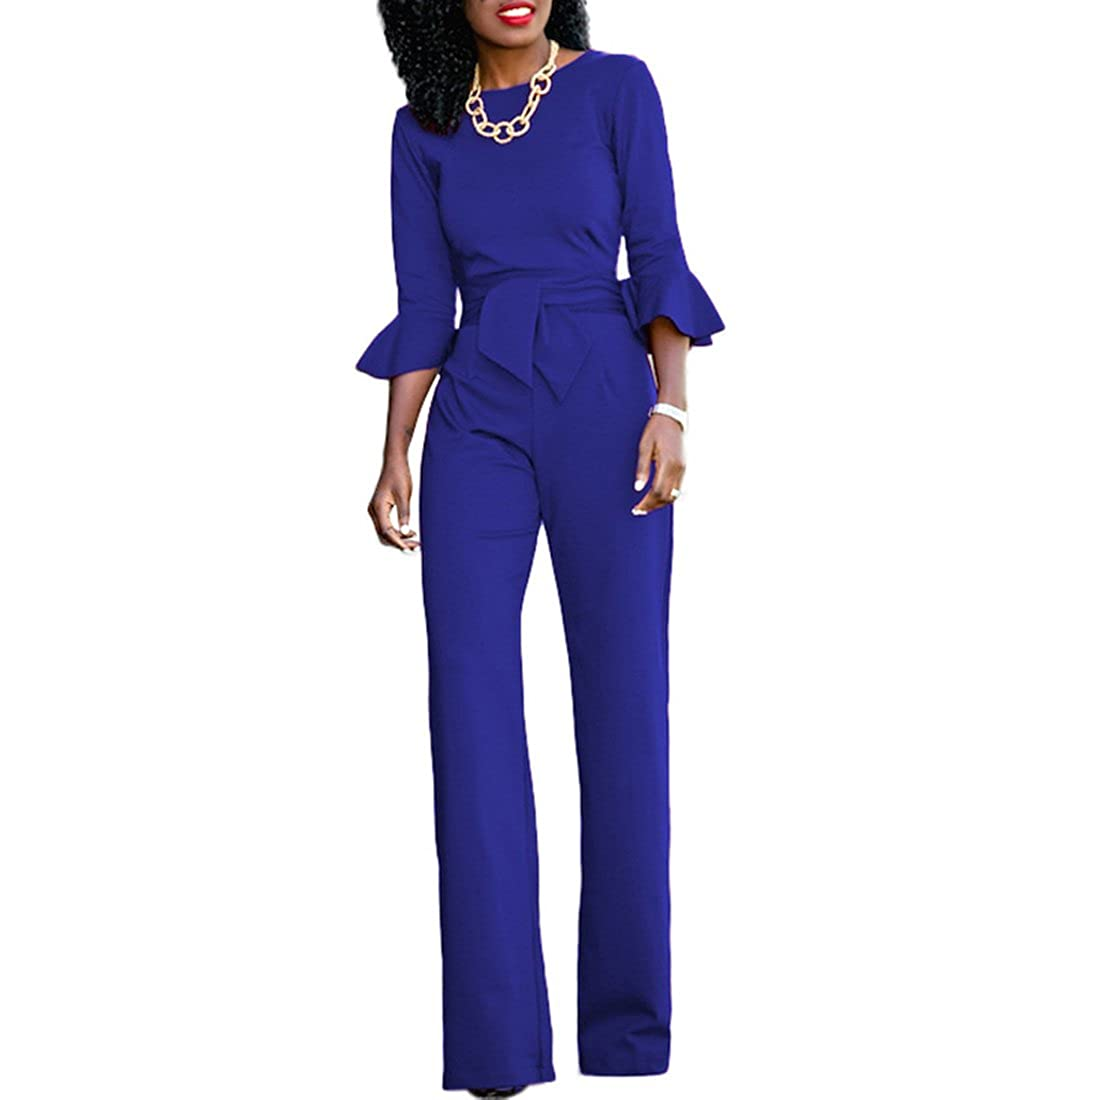 7095d2d00f16 Chic-Lover Womens Solid Flare Sleeves Wide Leg Long Pants Jumpsuits Romper  with Belt  Amazon.ca  Jewelry